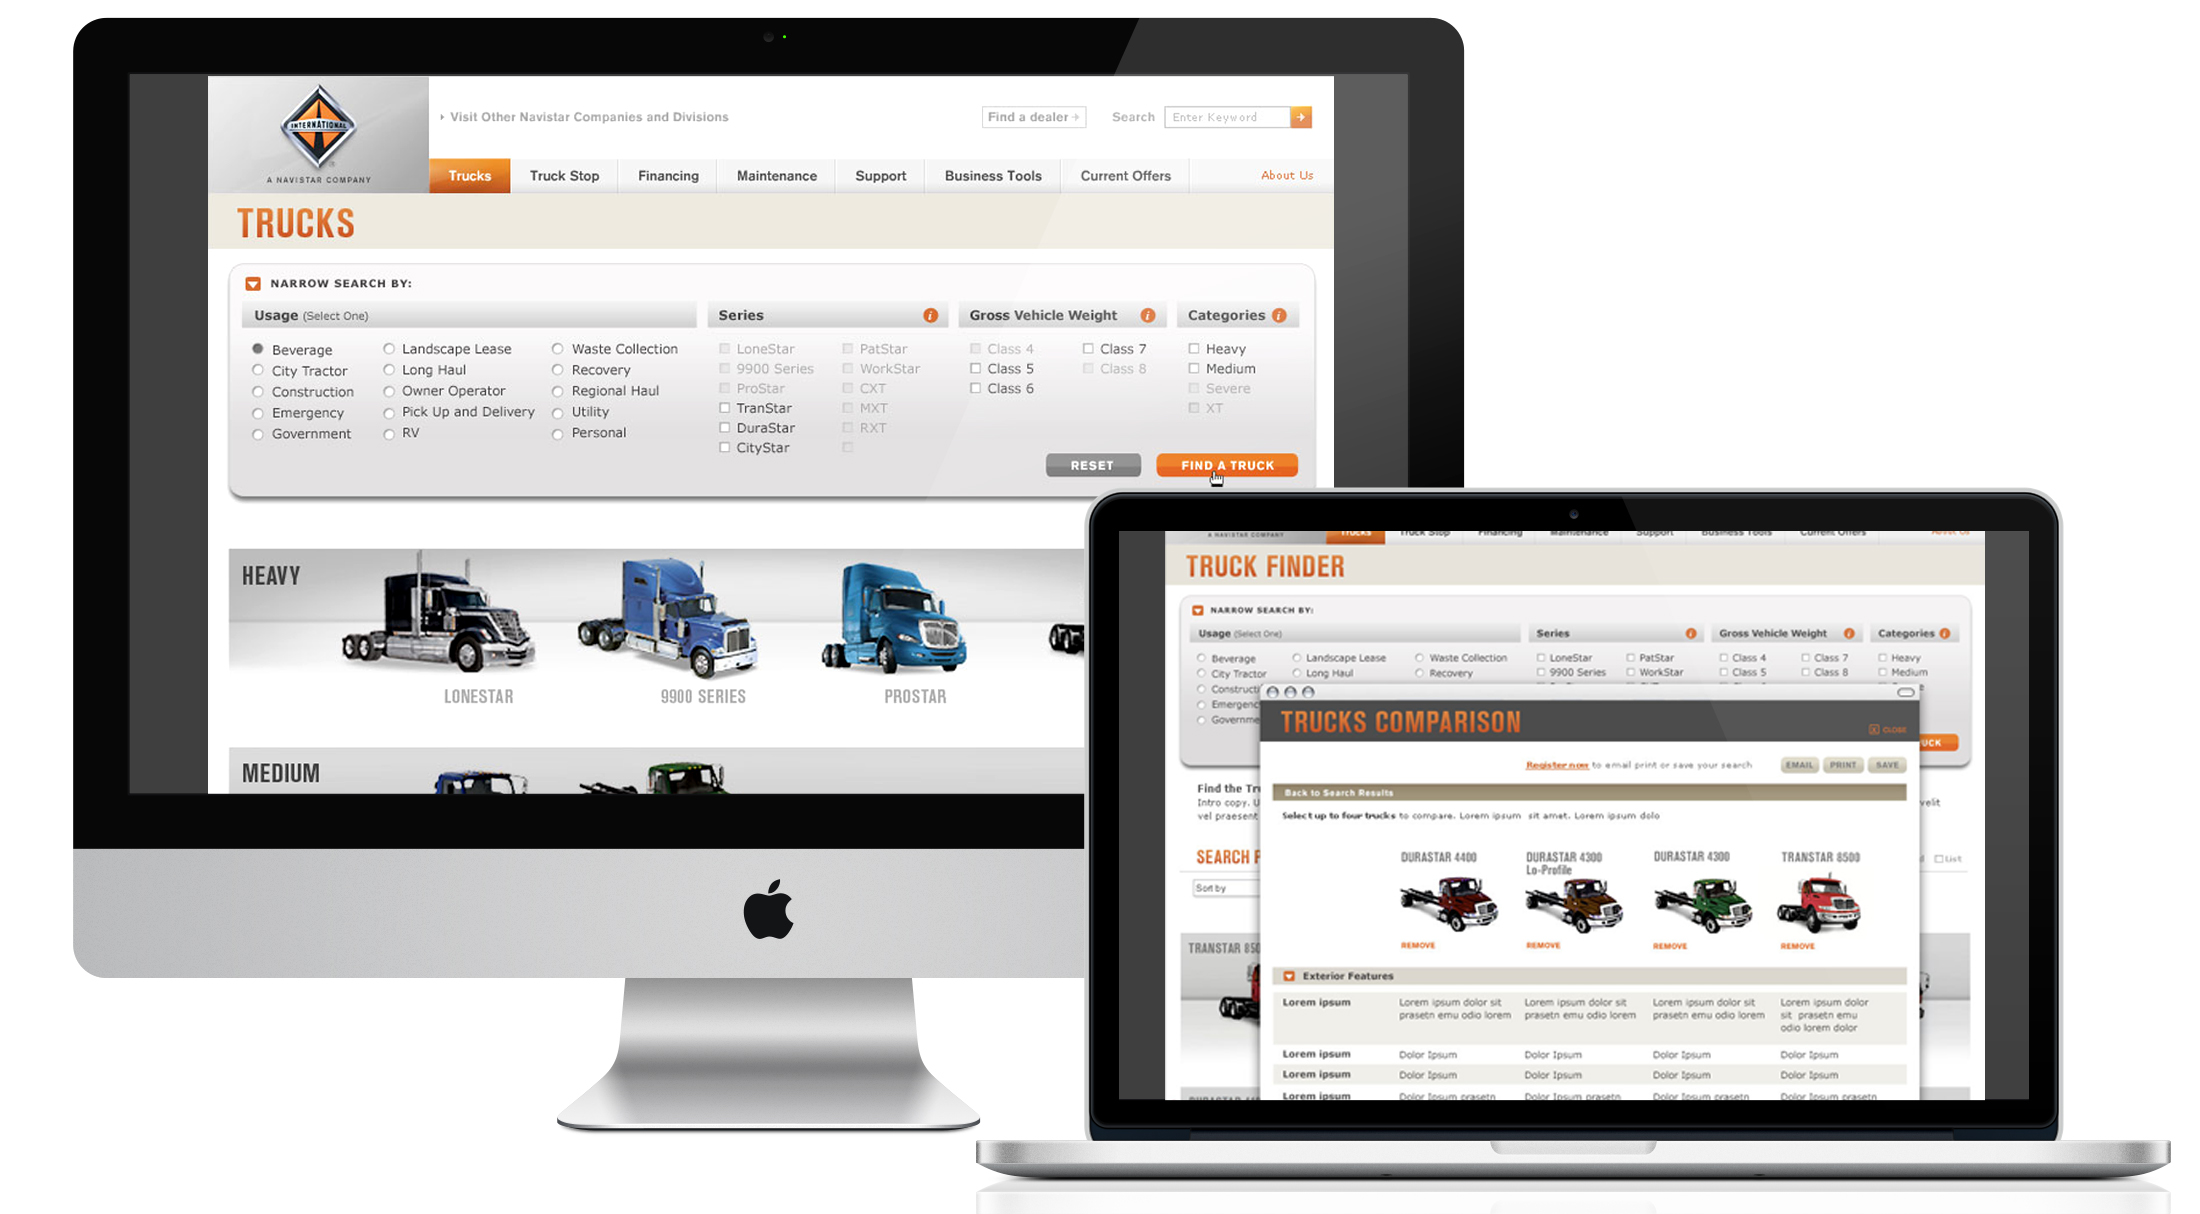 Customers ranged from large fleets to small business owners to independent truckers, many of whom relied on the website to figure out which truck(s) was right for their needs. A truck finder application wasdevelopedthat provided direction, filters and comparisons.